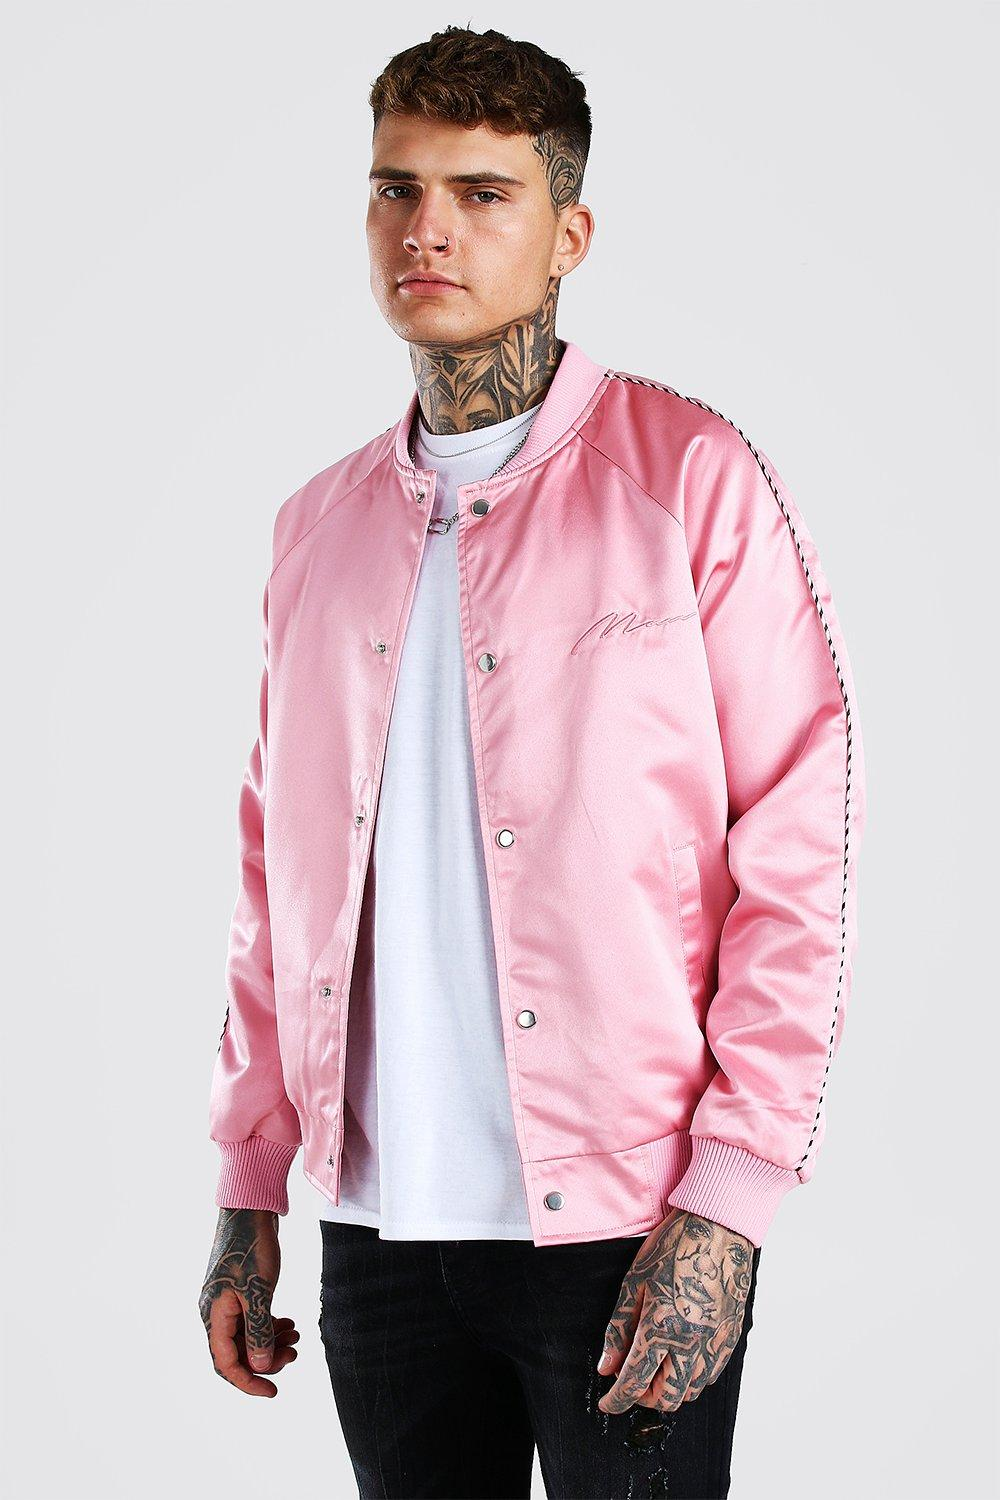 mens satin bomber jacket with chest man embroidery - pink